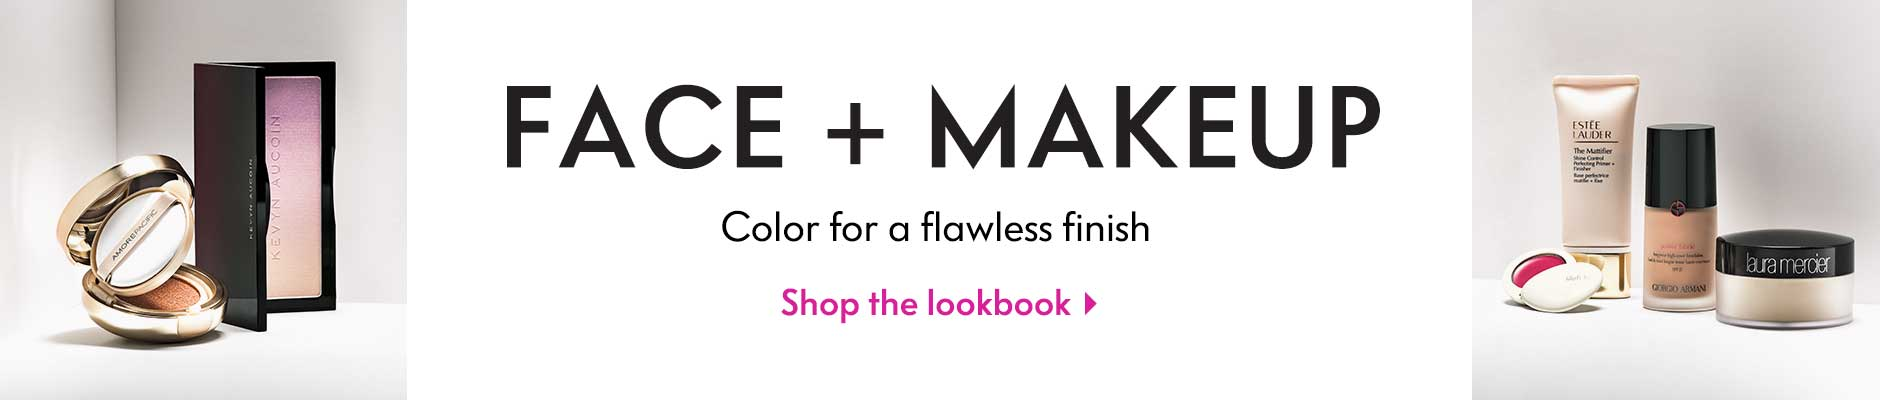 Face + makeup - color for a flawless finish - shop the lookbook